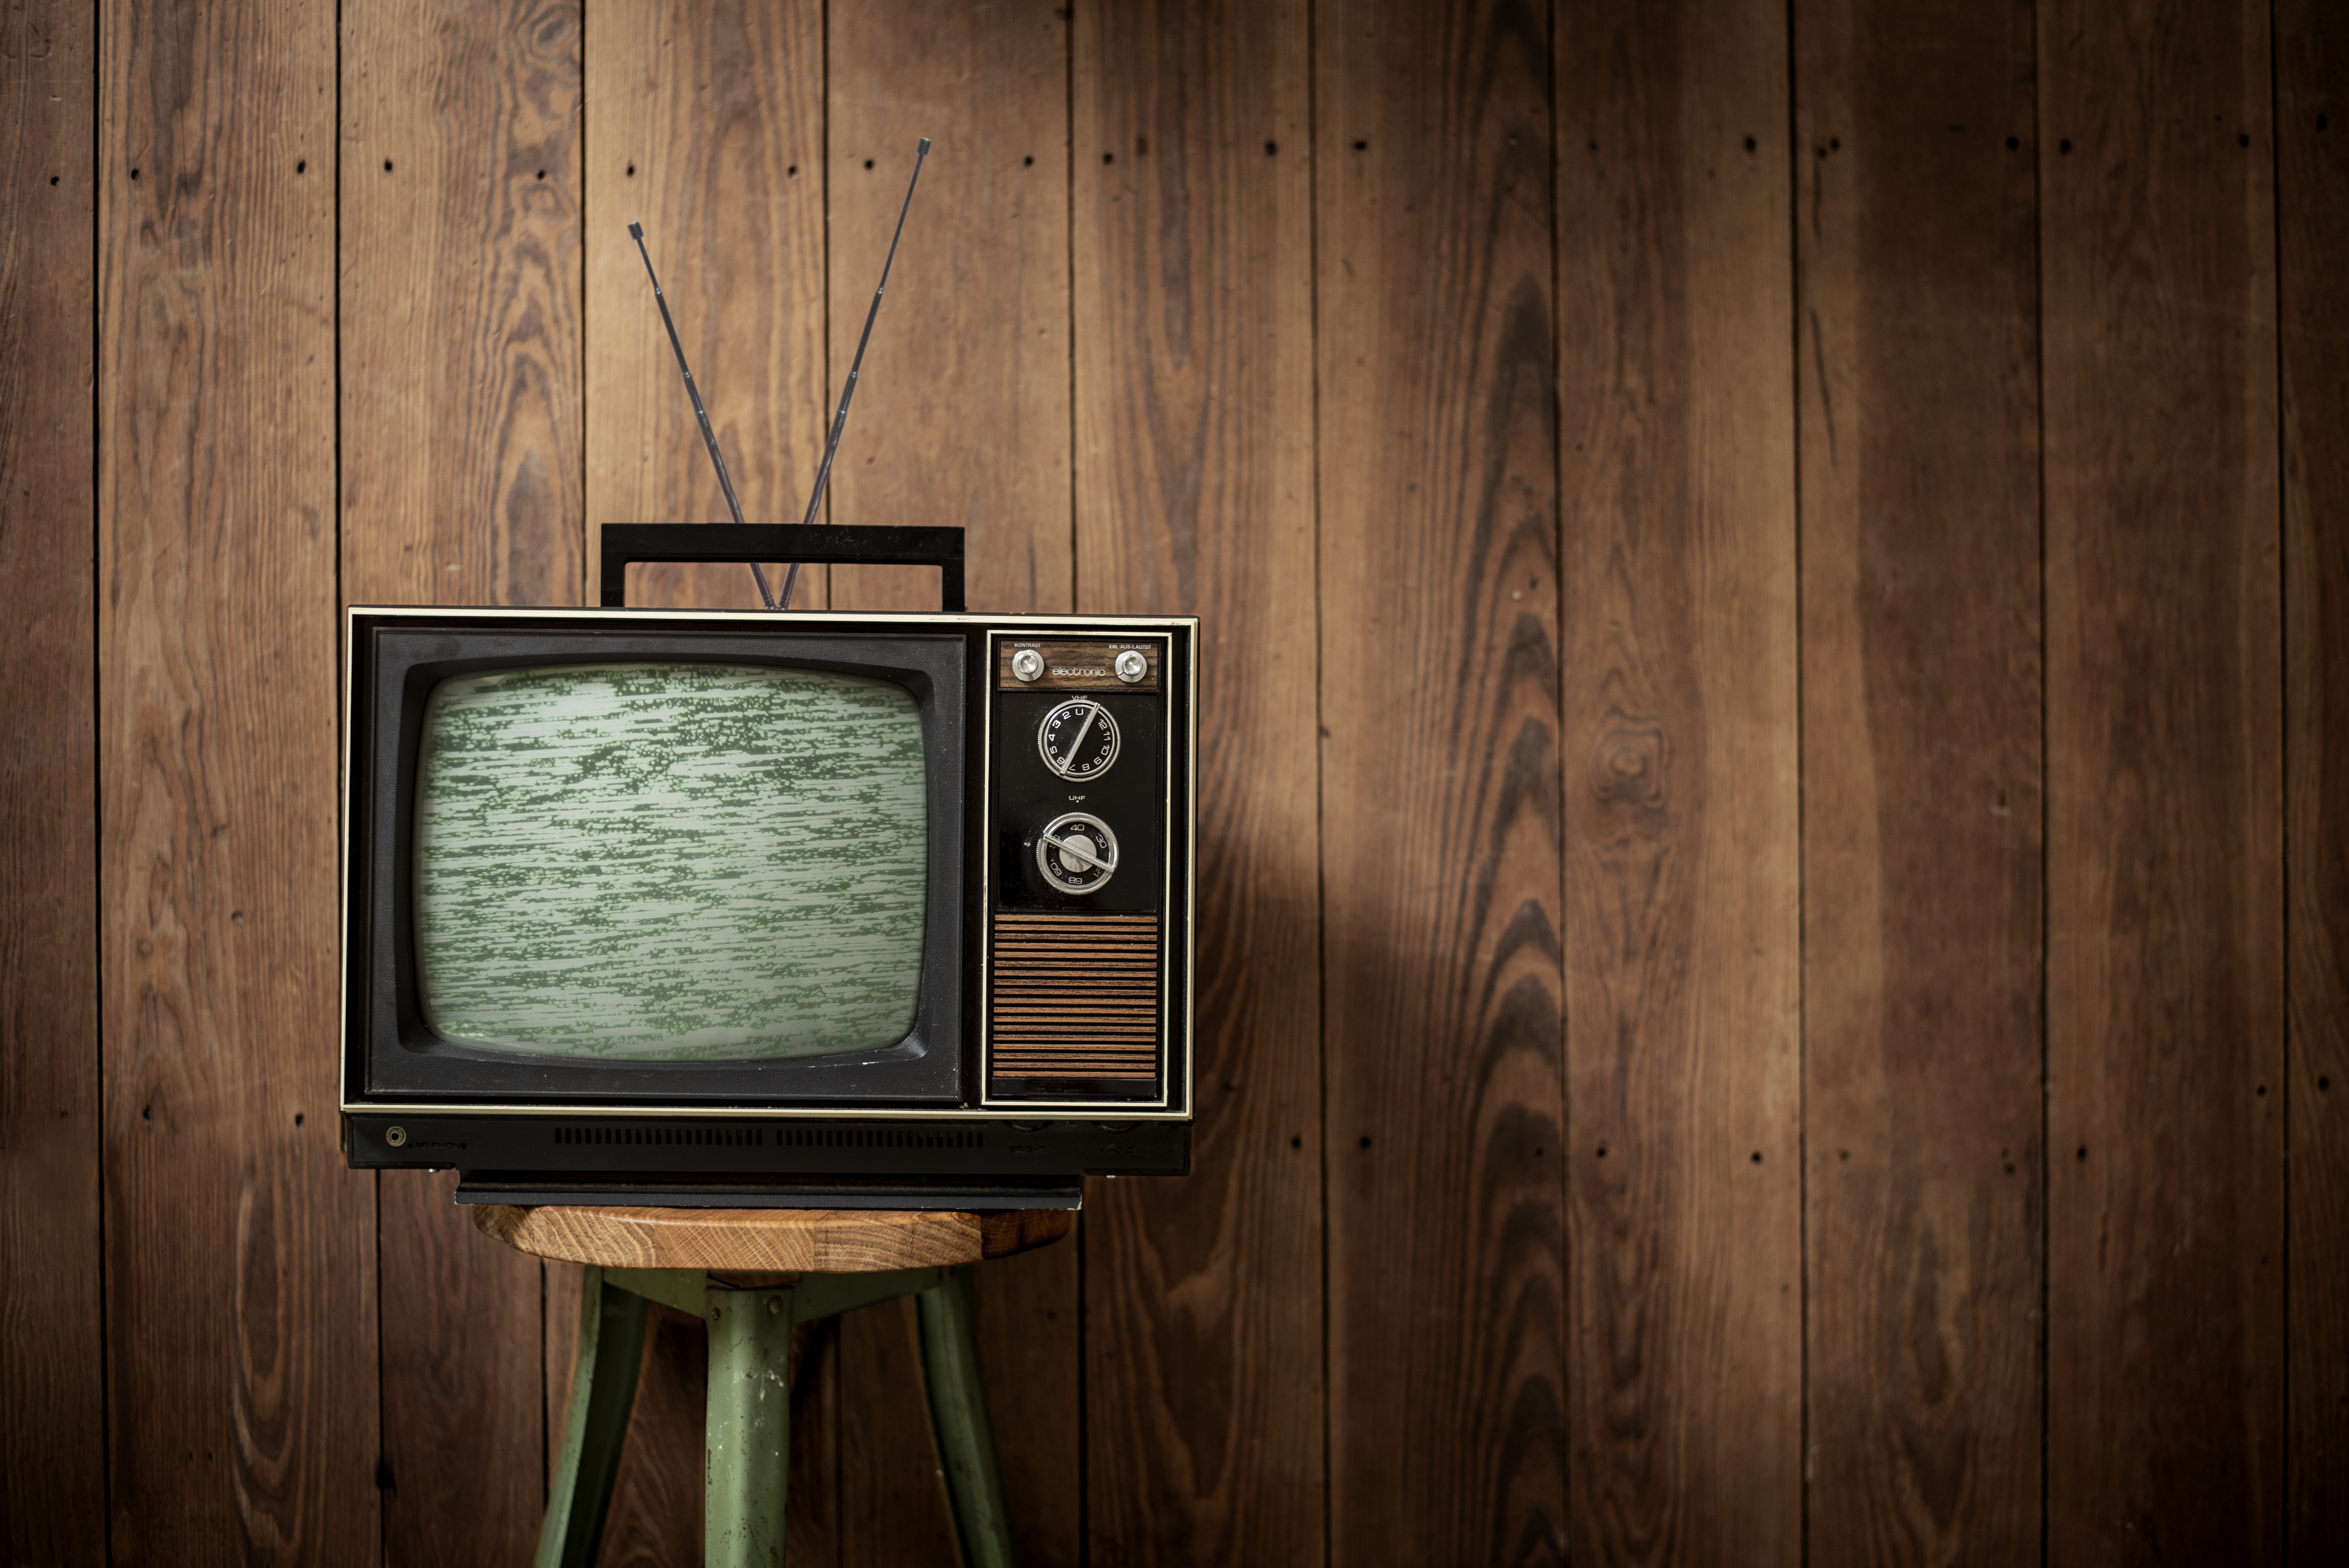 vintage television with static